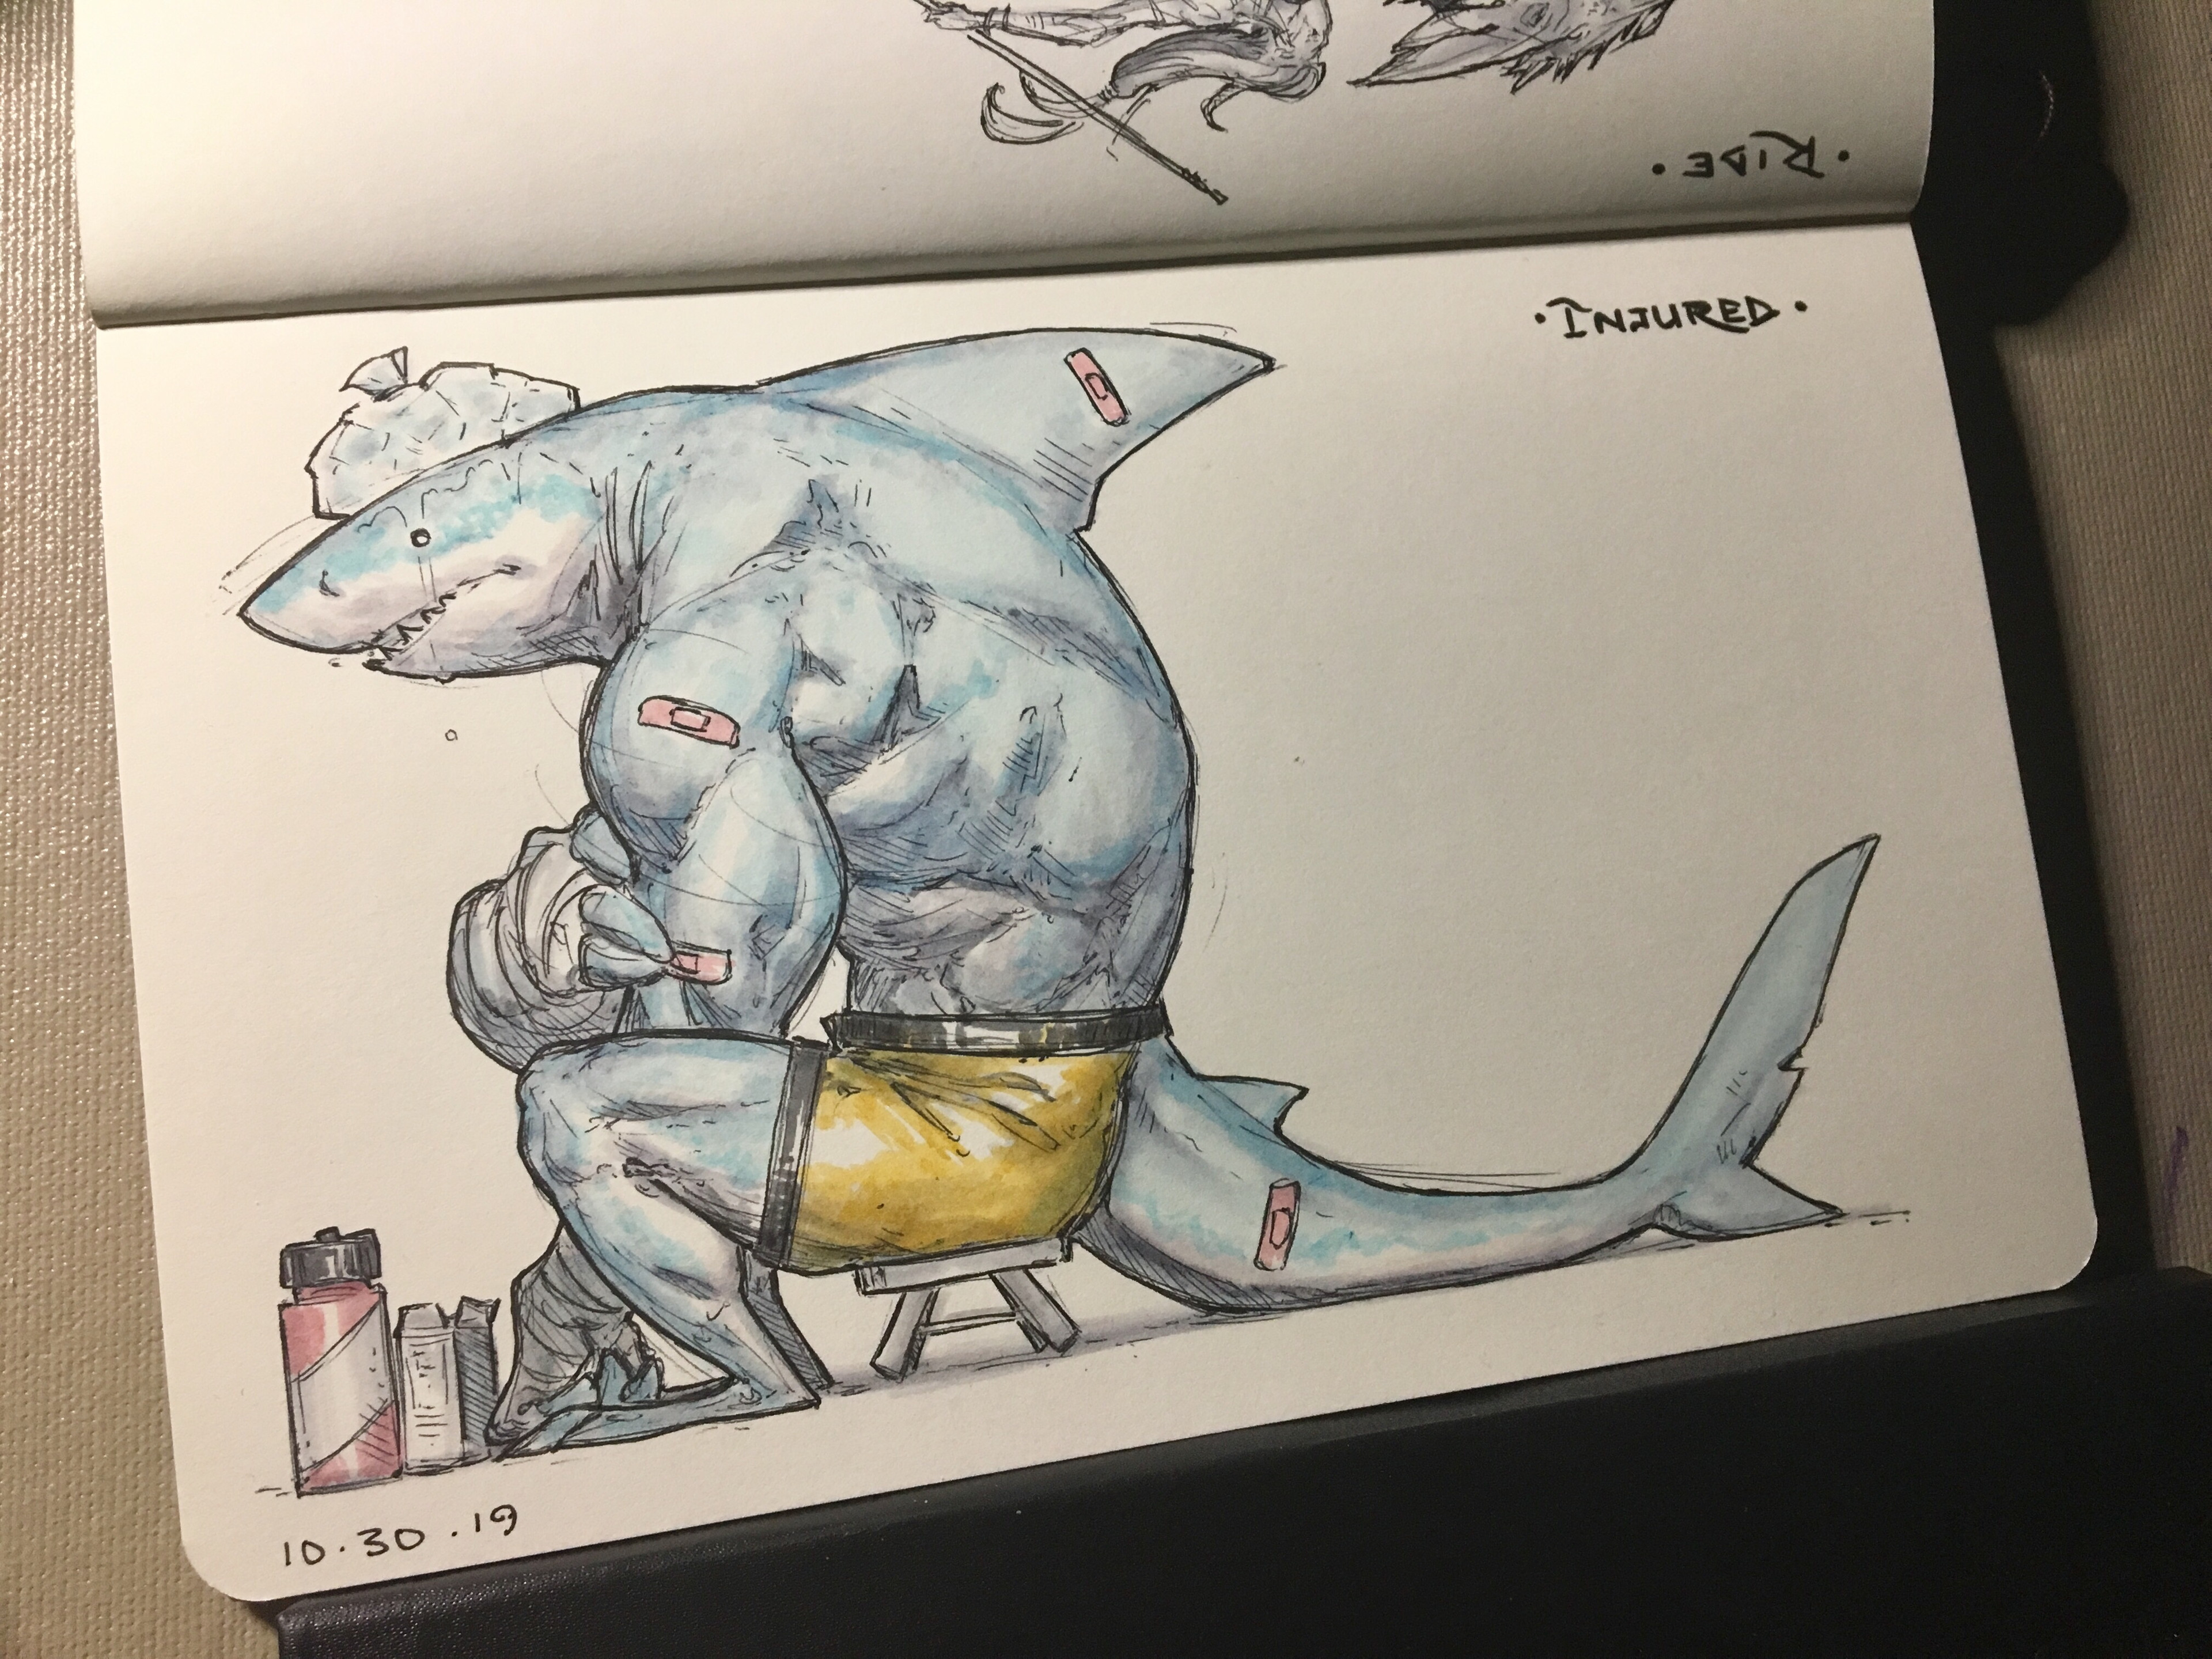 Day 29 of inktober 2019! Injured! Finally caught up, and this time with a shark dude after a fight. Don't worry, he's fine... His injuries aren't as bad as the damage to his pride... 😅